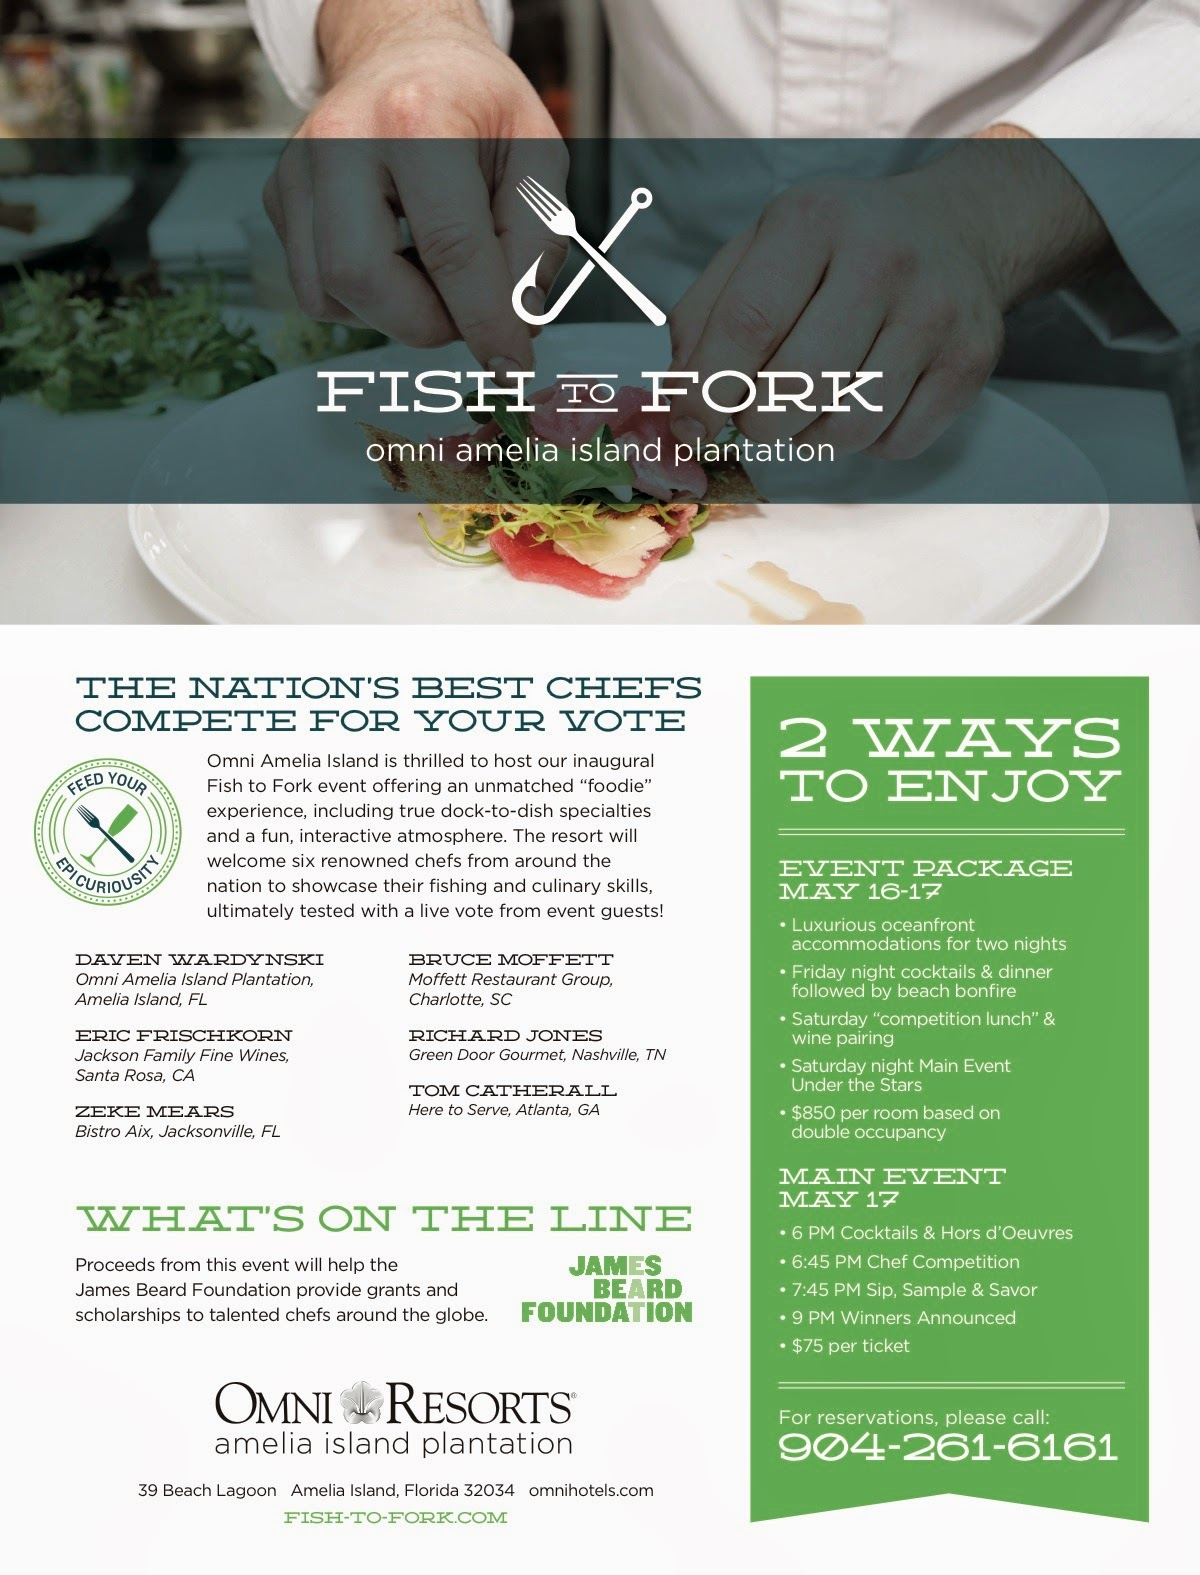 Fish to Fork Culinary Weekend